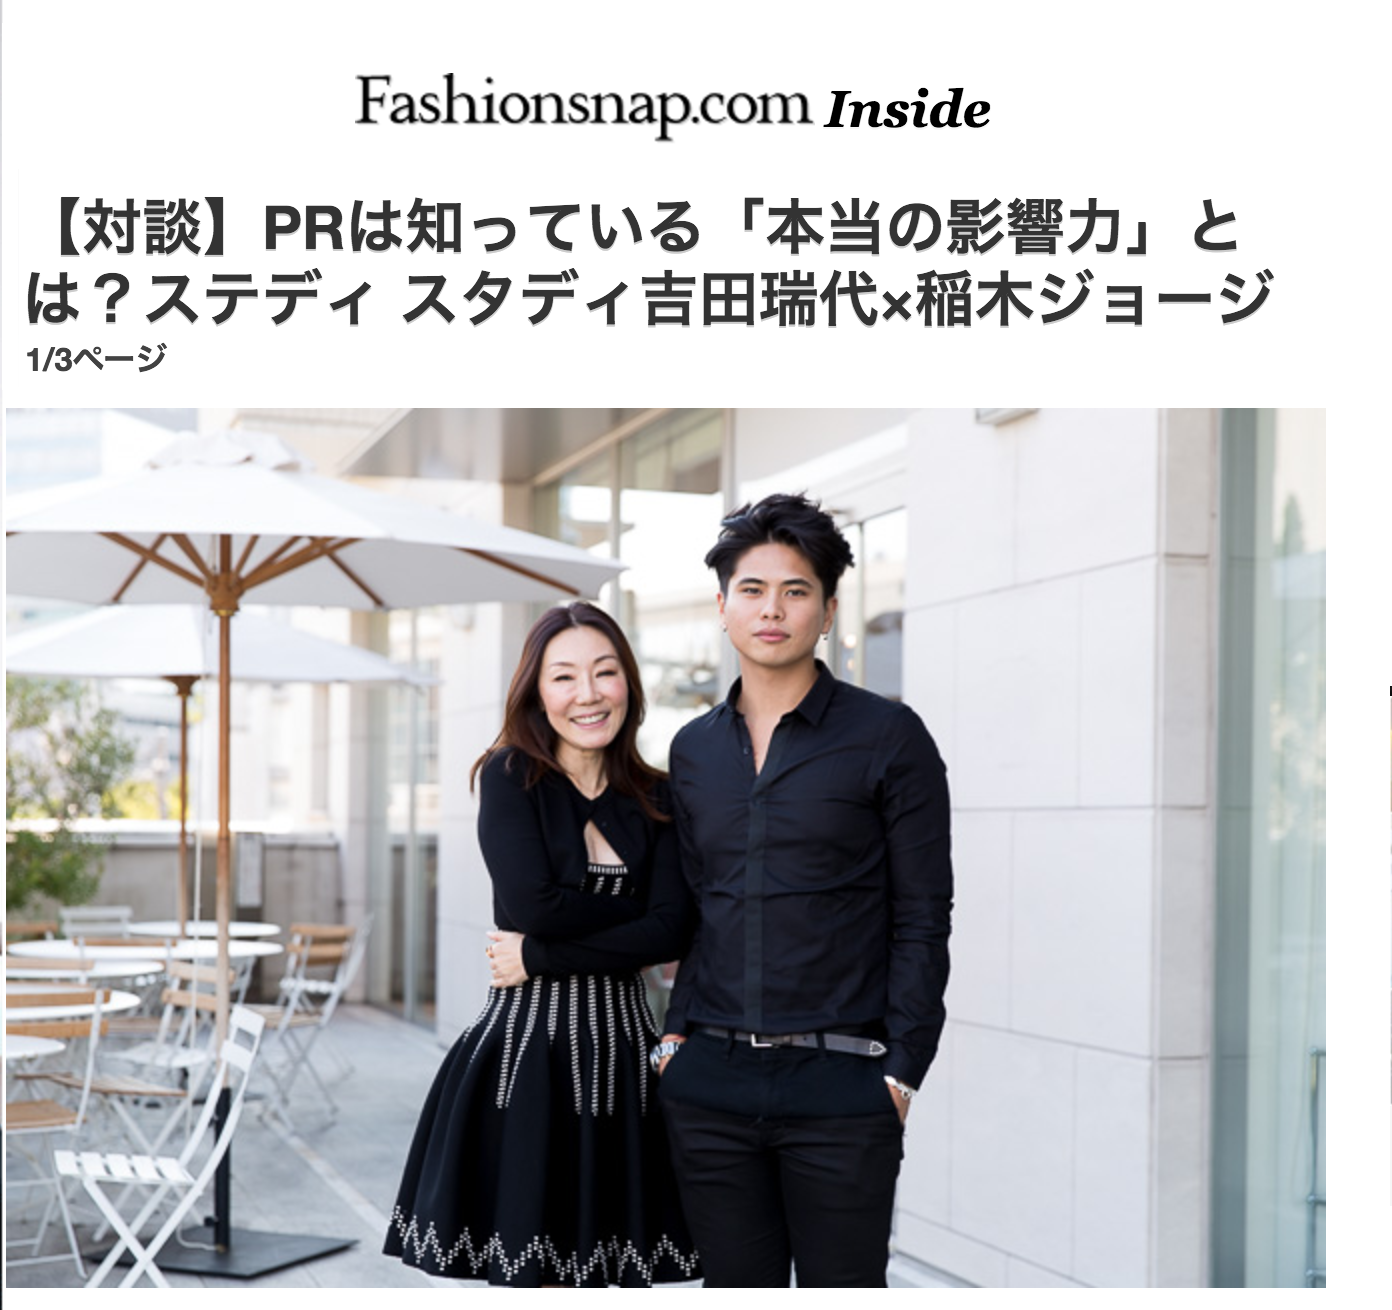 Interviewed by Fashionsnap.com , January 2017